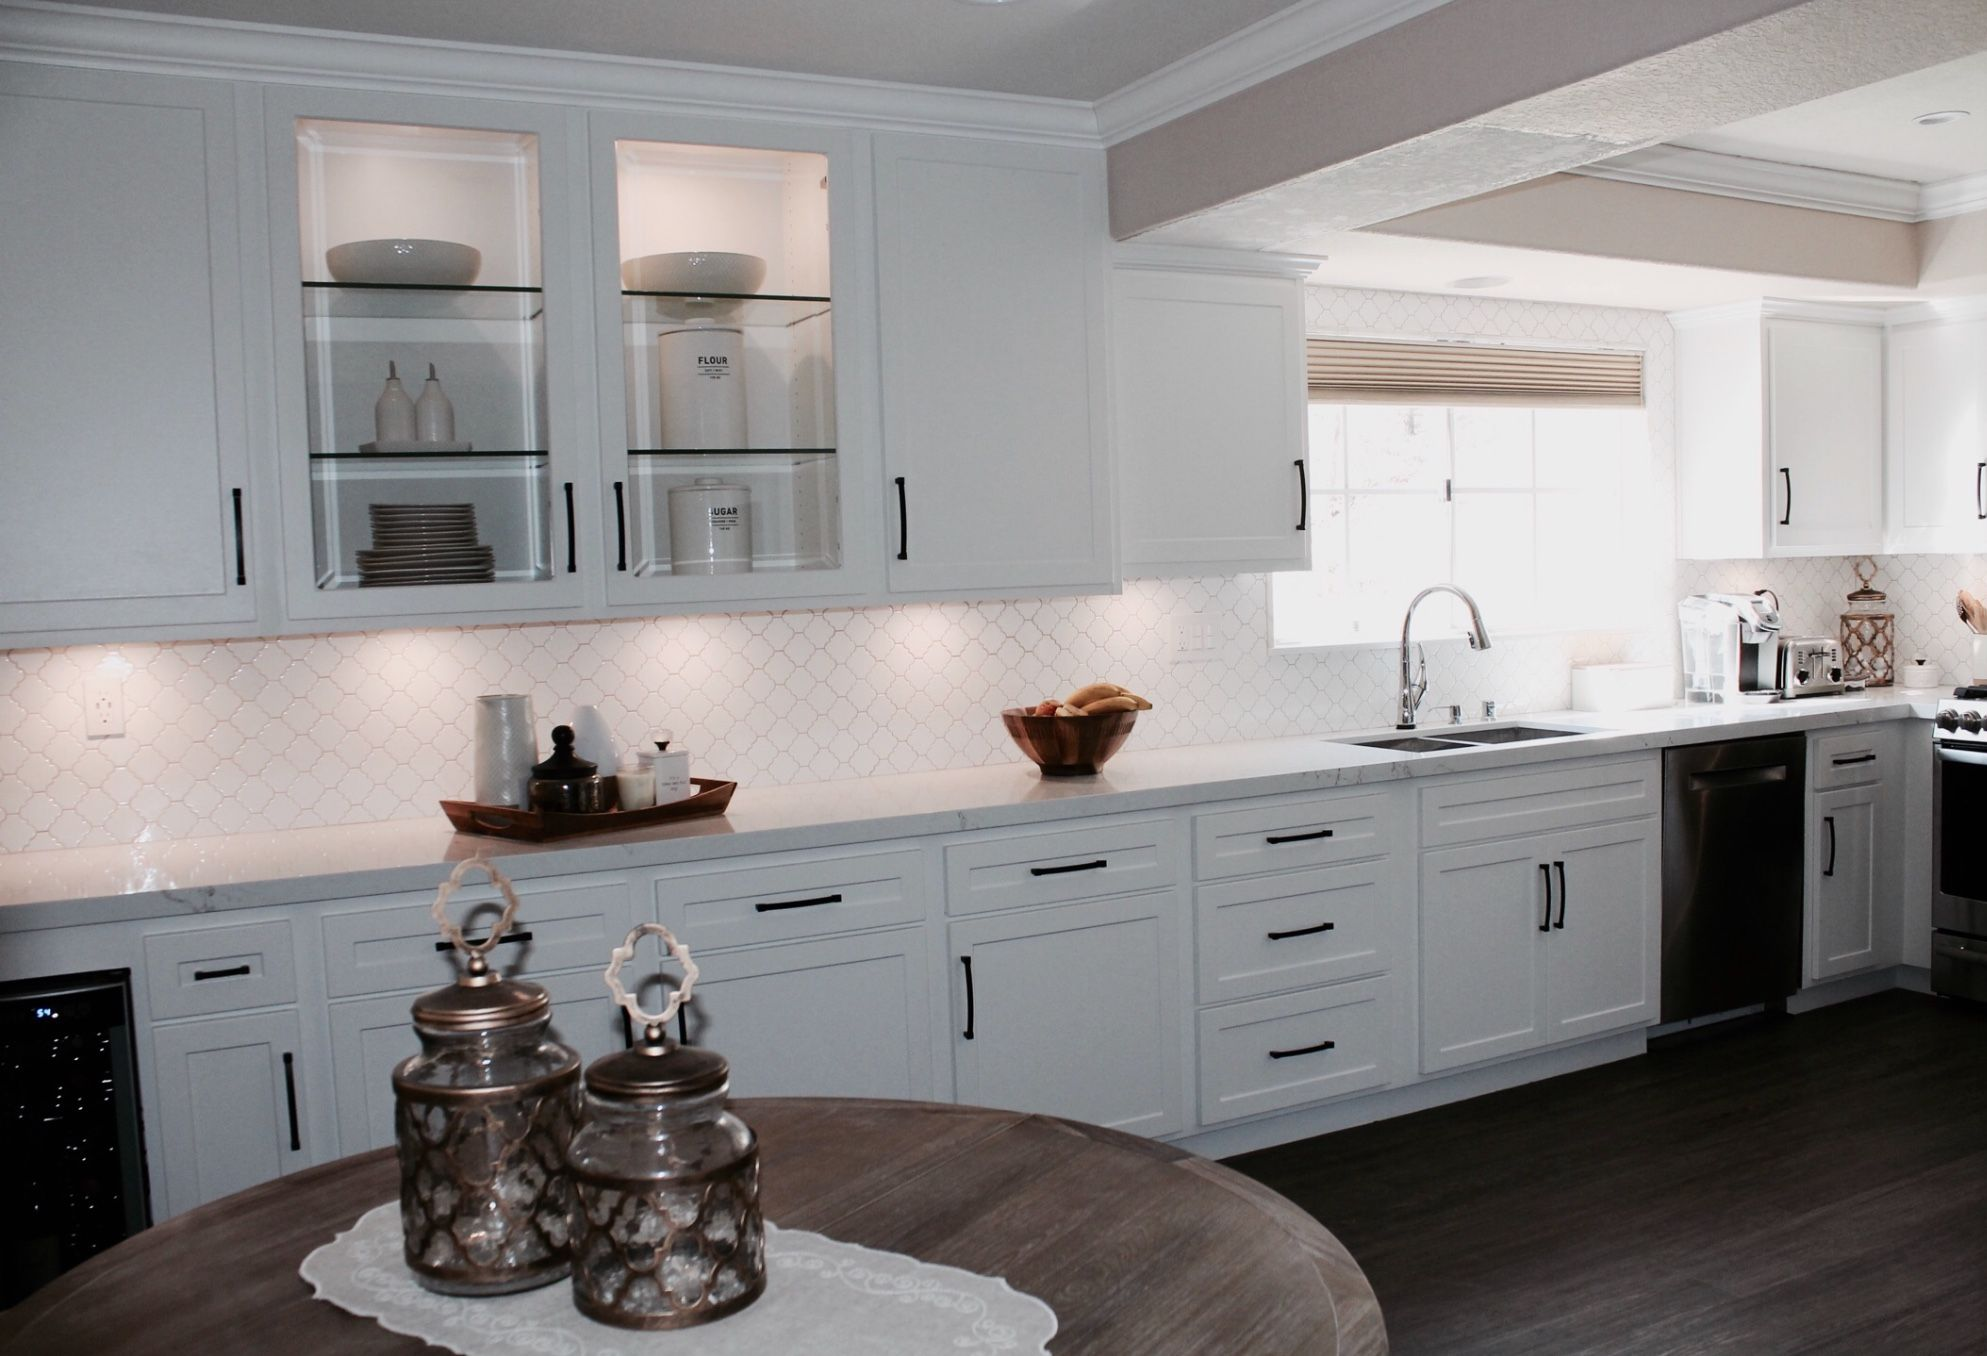 A Full Shot Of The Refaced Anaheim Kitchen This Is A Perfect Pallet To Follow When You Are Trying To Avoid Kitchen Cabinetry Kitchen Refacing Cabinet Remodel